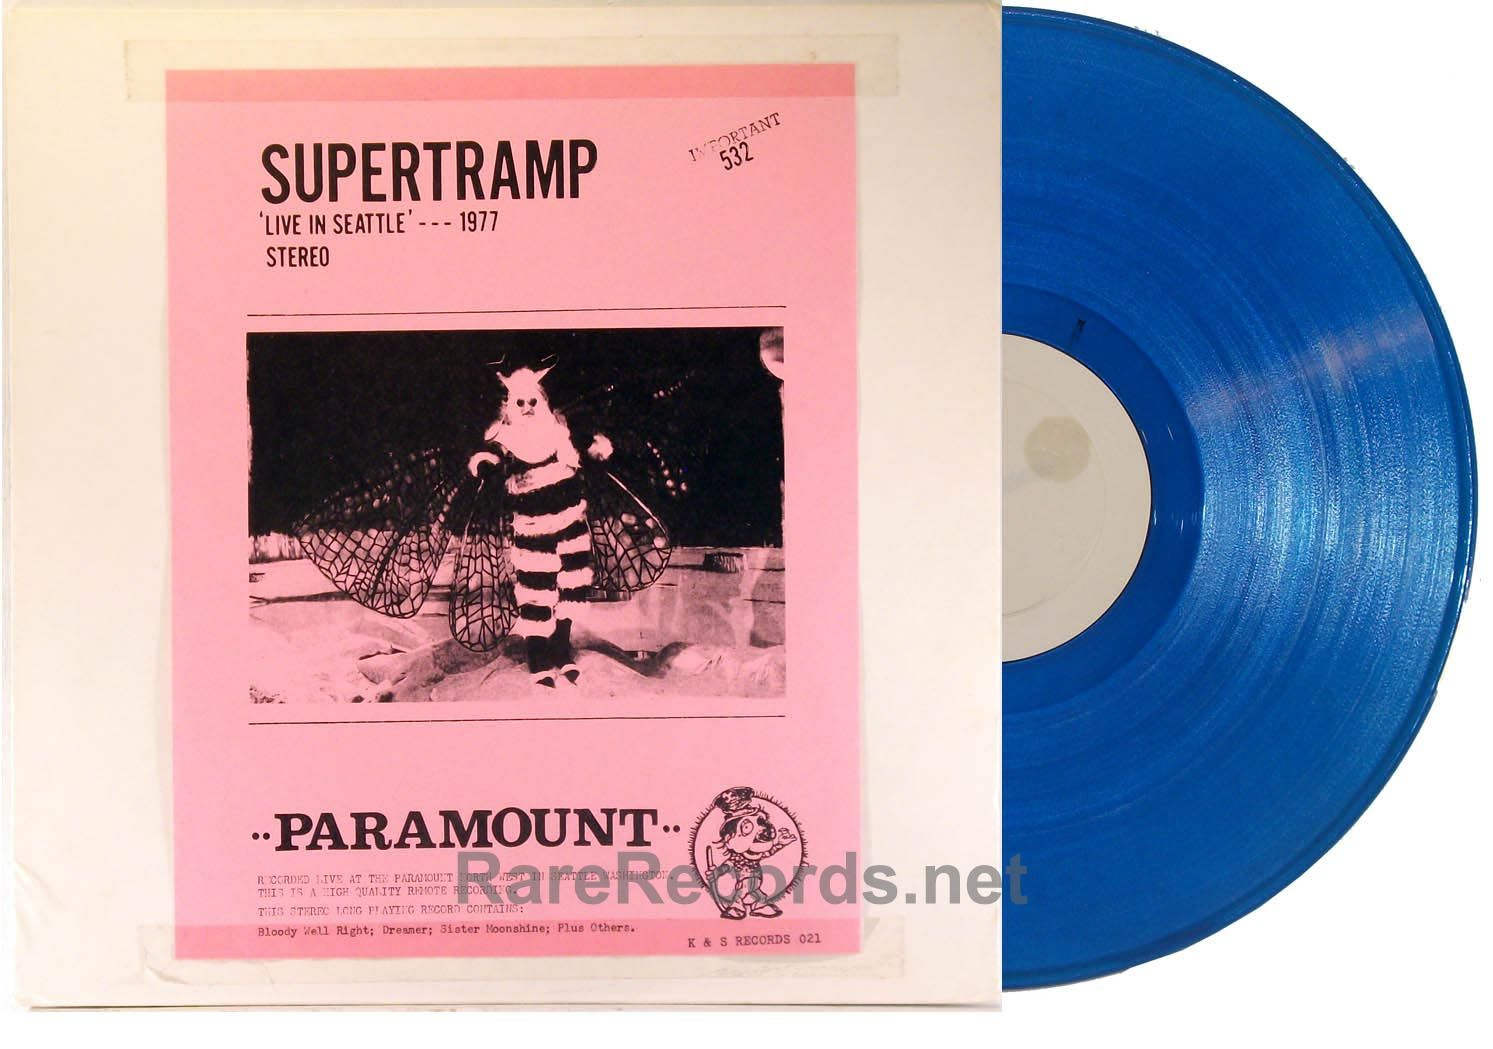 Supertramp Live In Seattle 1977 K S Records 1978 Rare Blue Vinyl Lp Issued By The Obscure Canadian Label K S Records Blue Vinyl R B Albums Rare Records